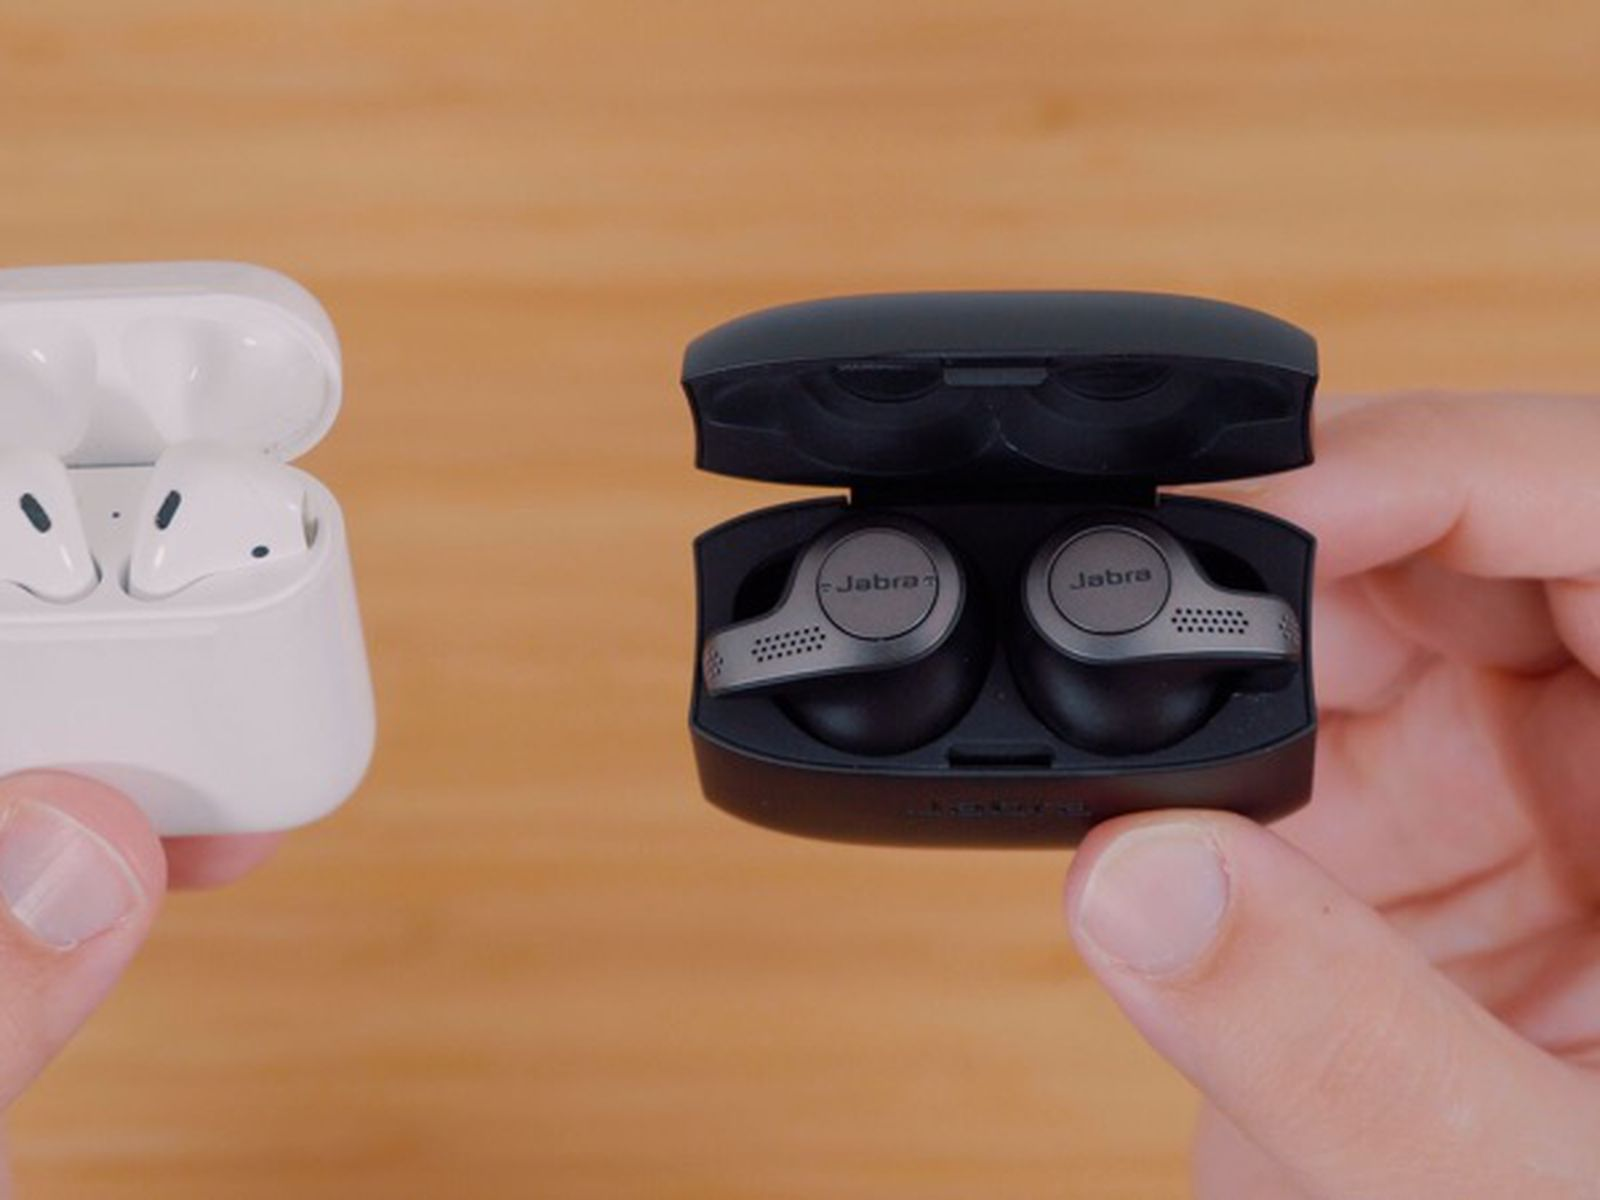 Apple S Airpods Vs Jabra S Elite 65t Wire Free Earbuds Macrumors